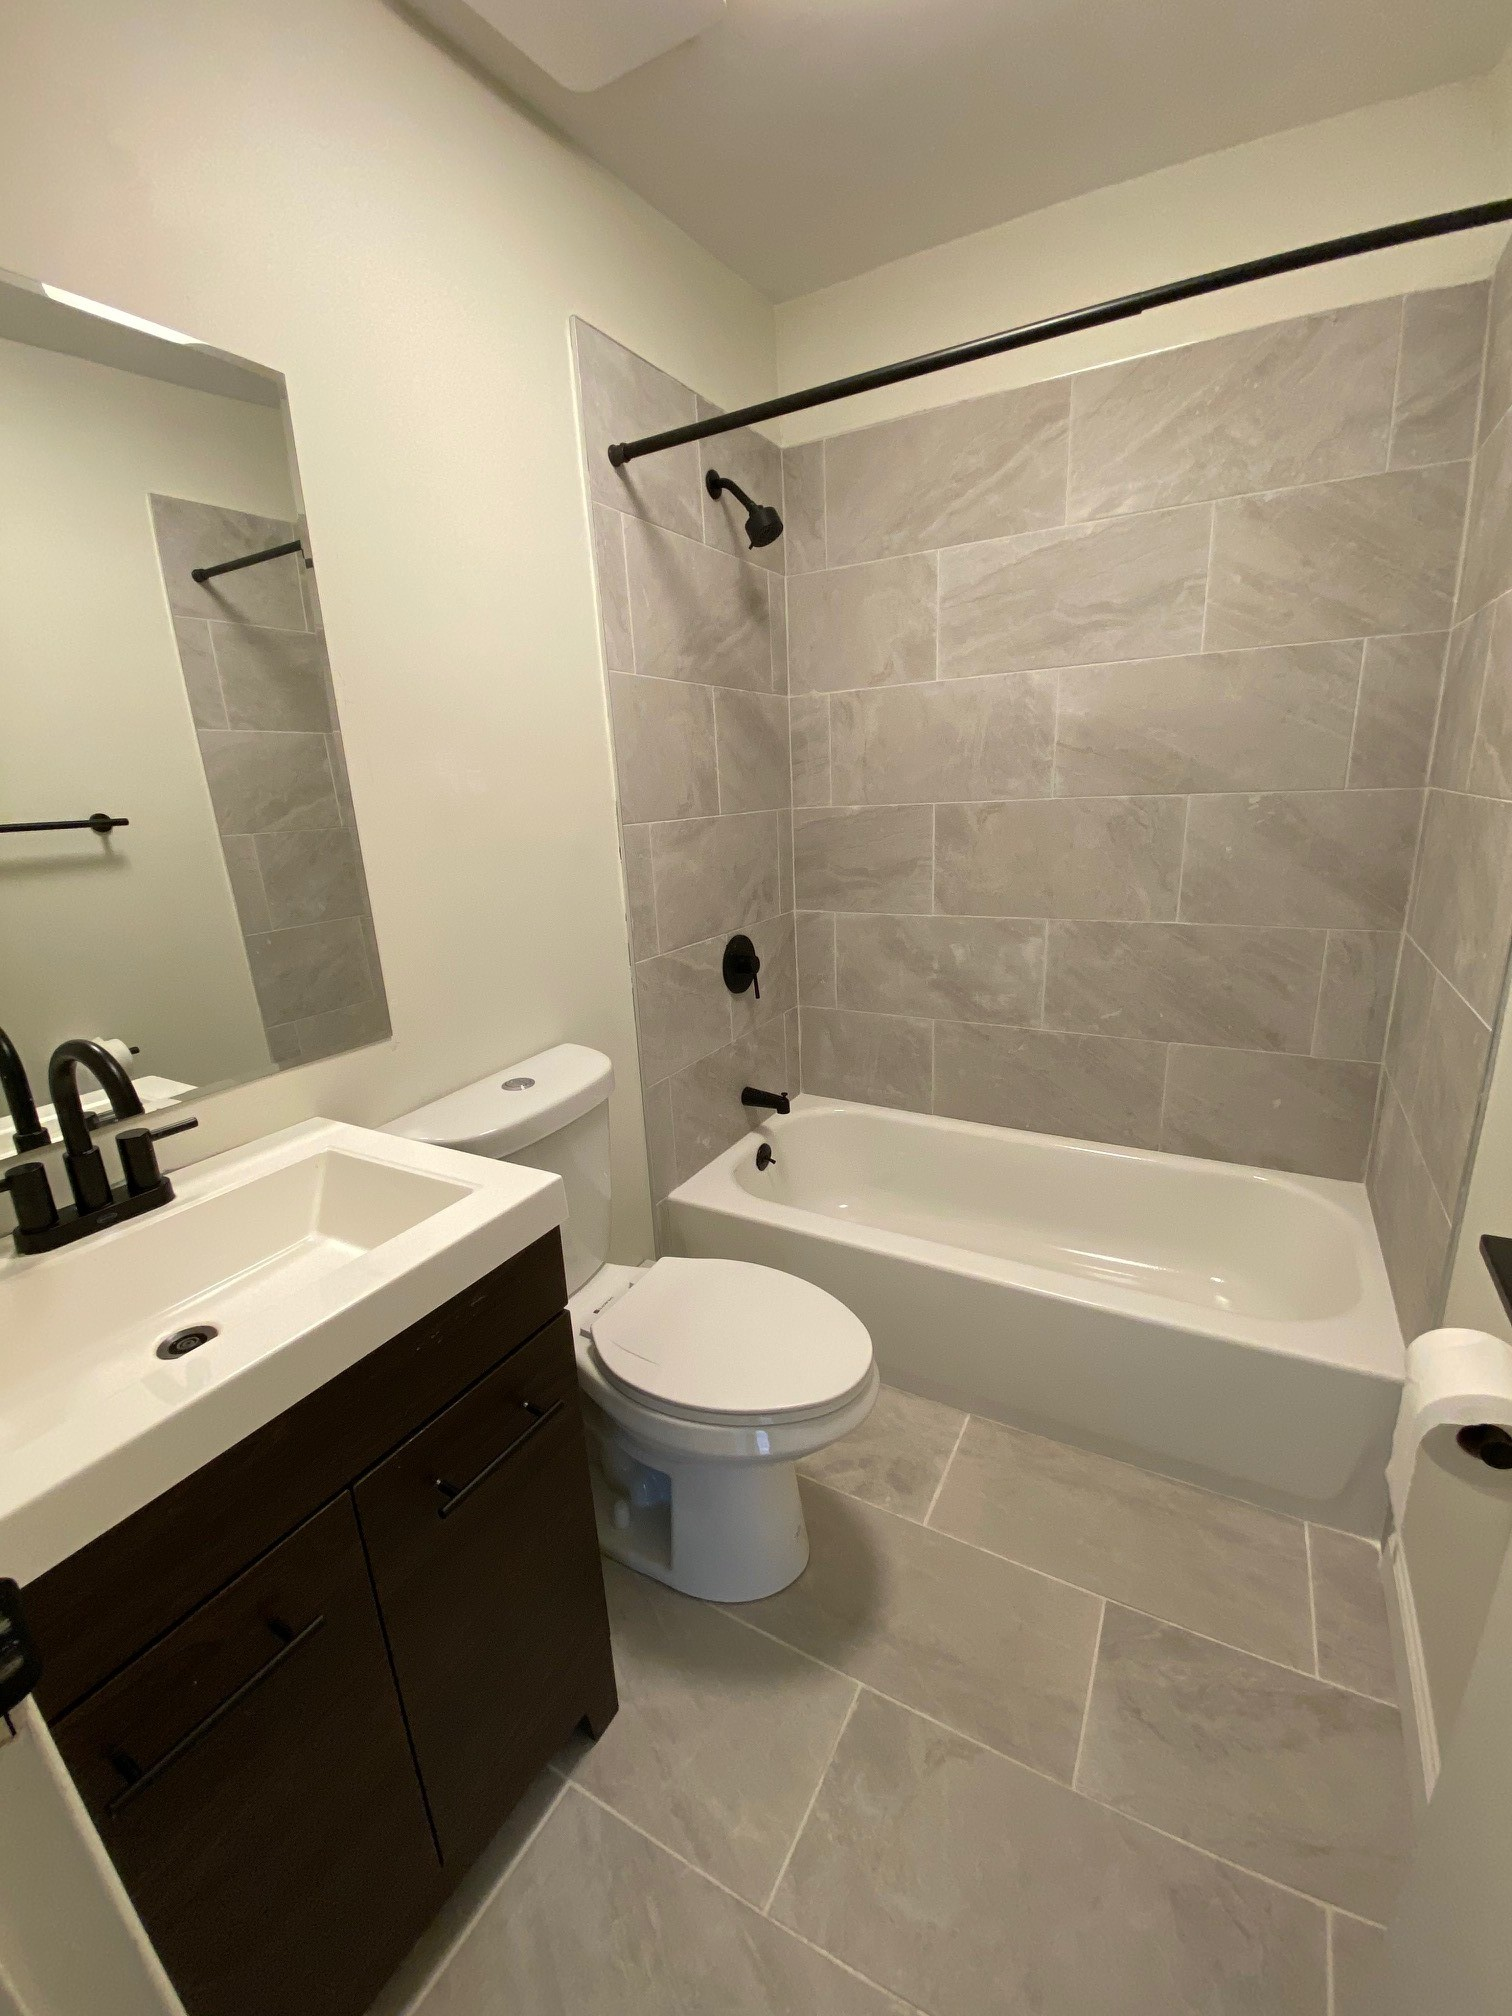 Updated Bathrooms at Hampton Gardens Apartments in Middlesex, New Jersey